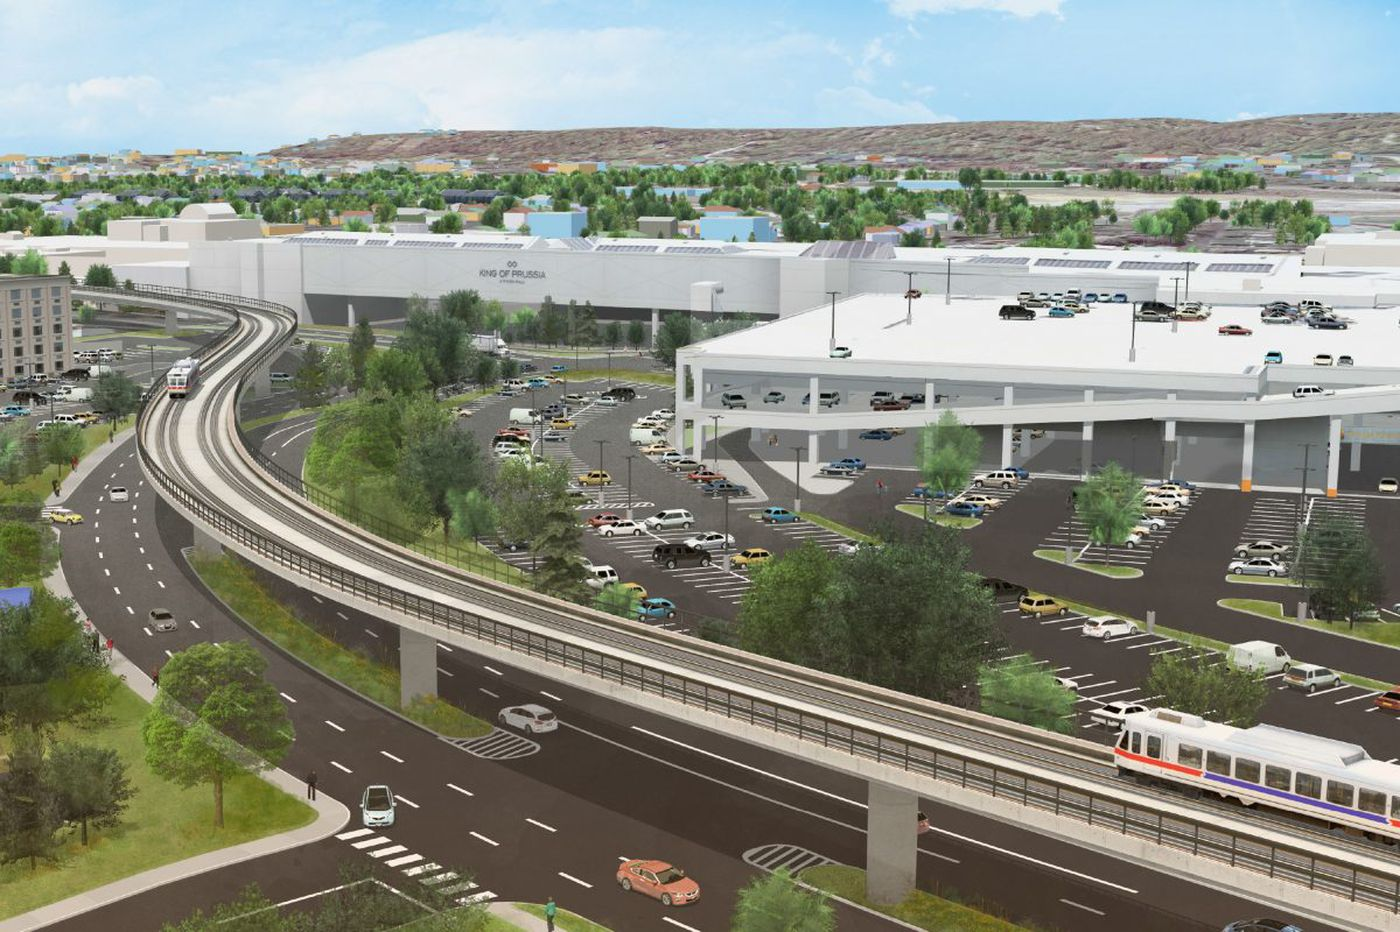 Seven-year King of Prussia rail delay shows folly of modern environmental laws | Opinion